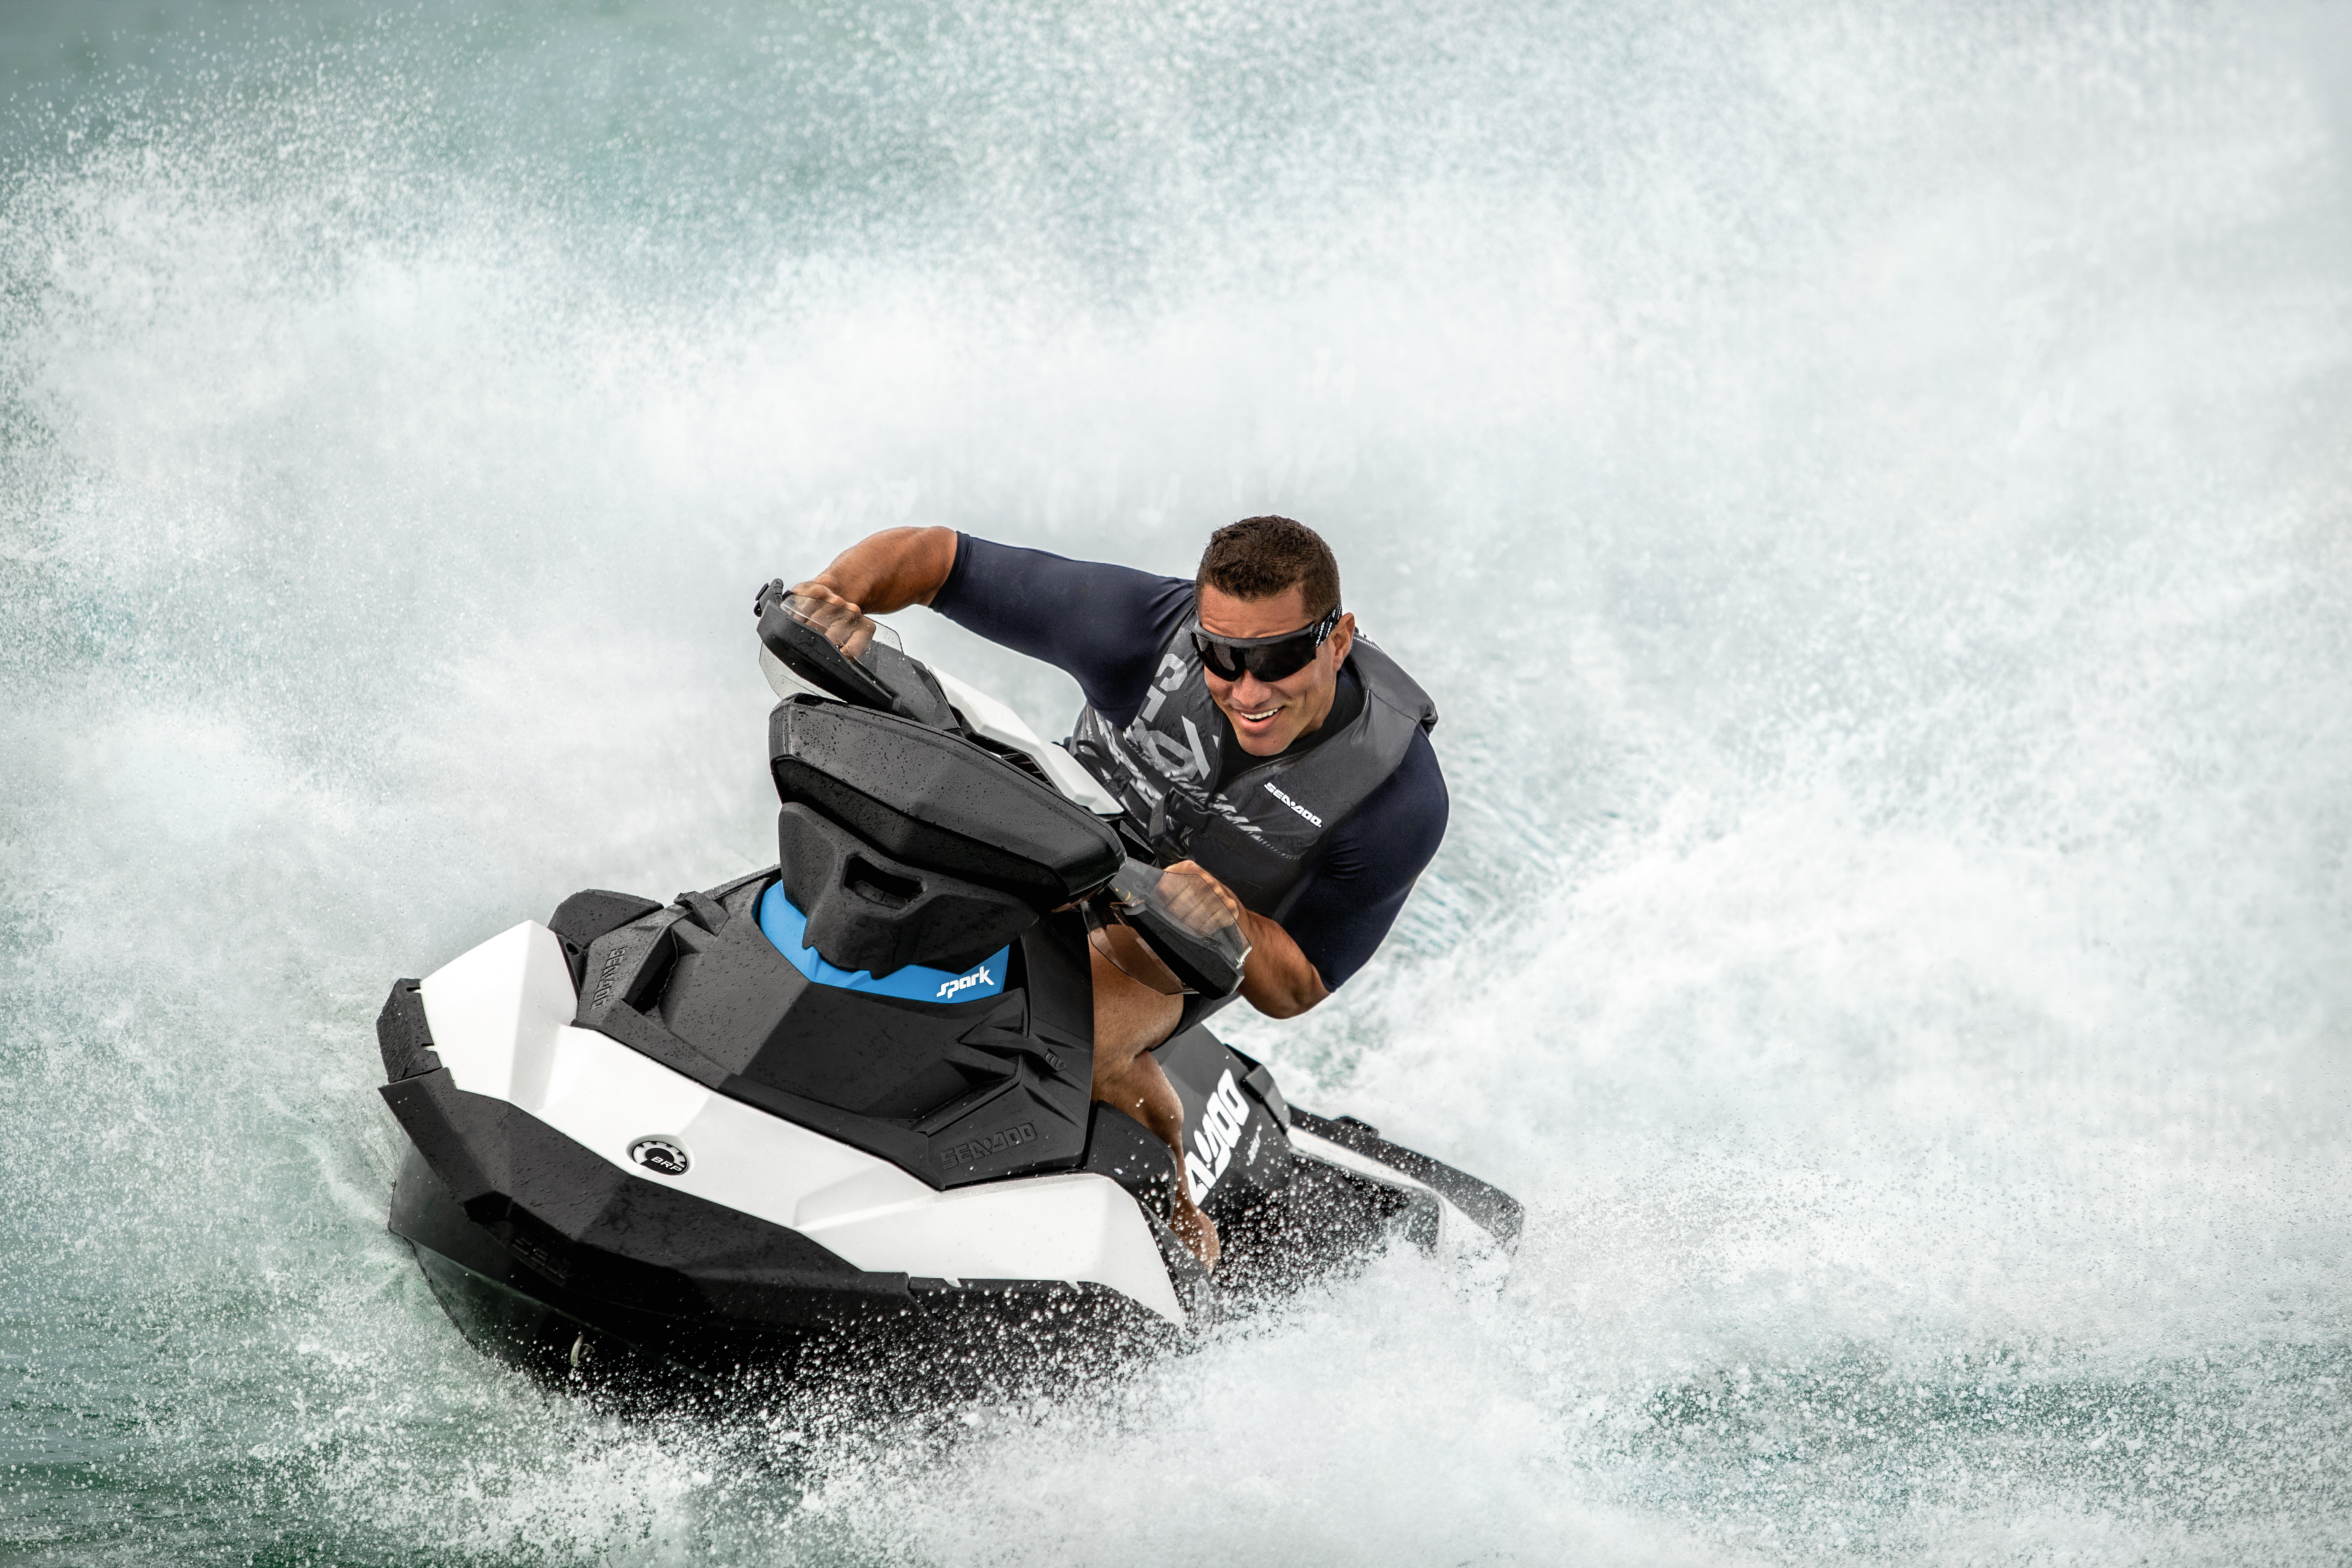 2019 Sea-Doo SPARK® 3-up Rotax 900 HO with iBR & Convenience Package -  Vanilla & Blueberry